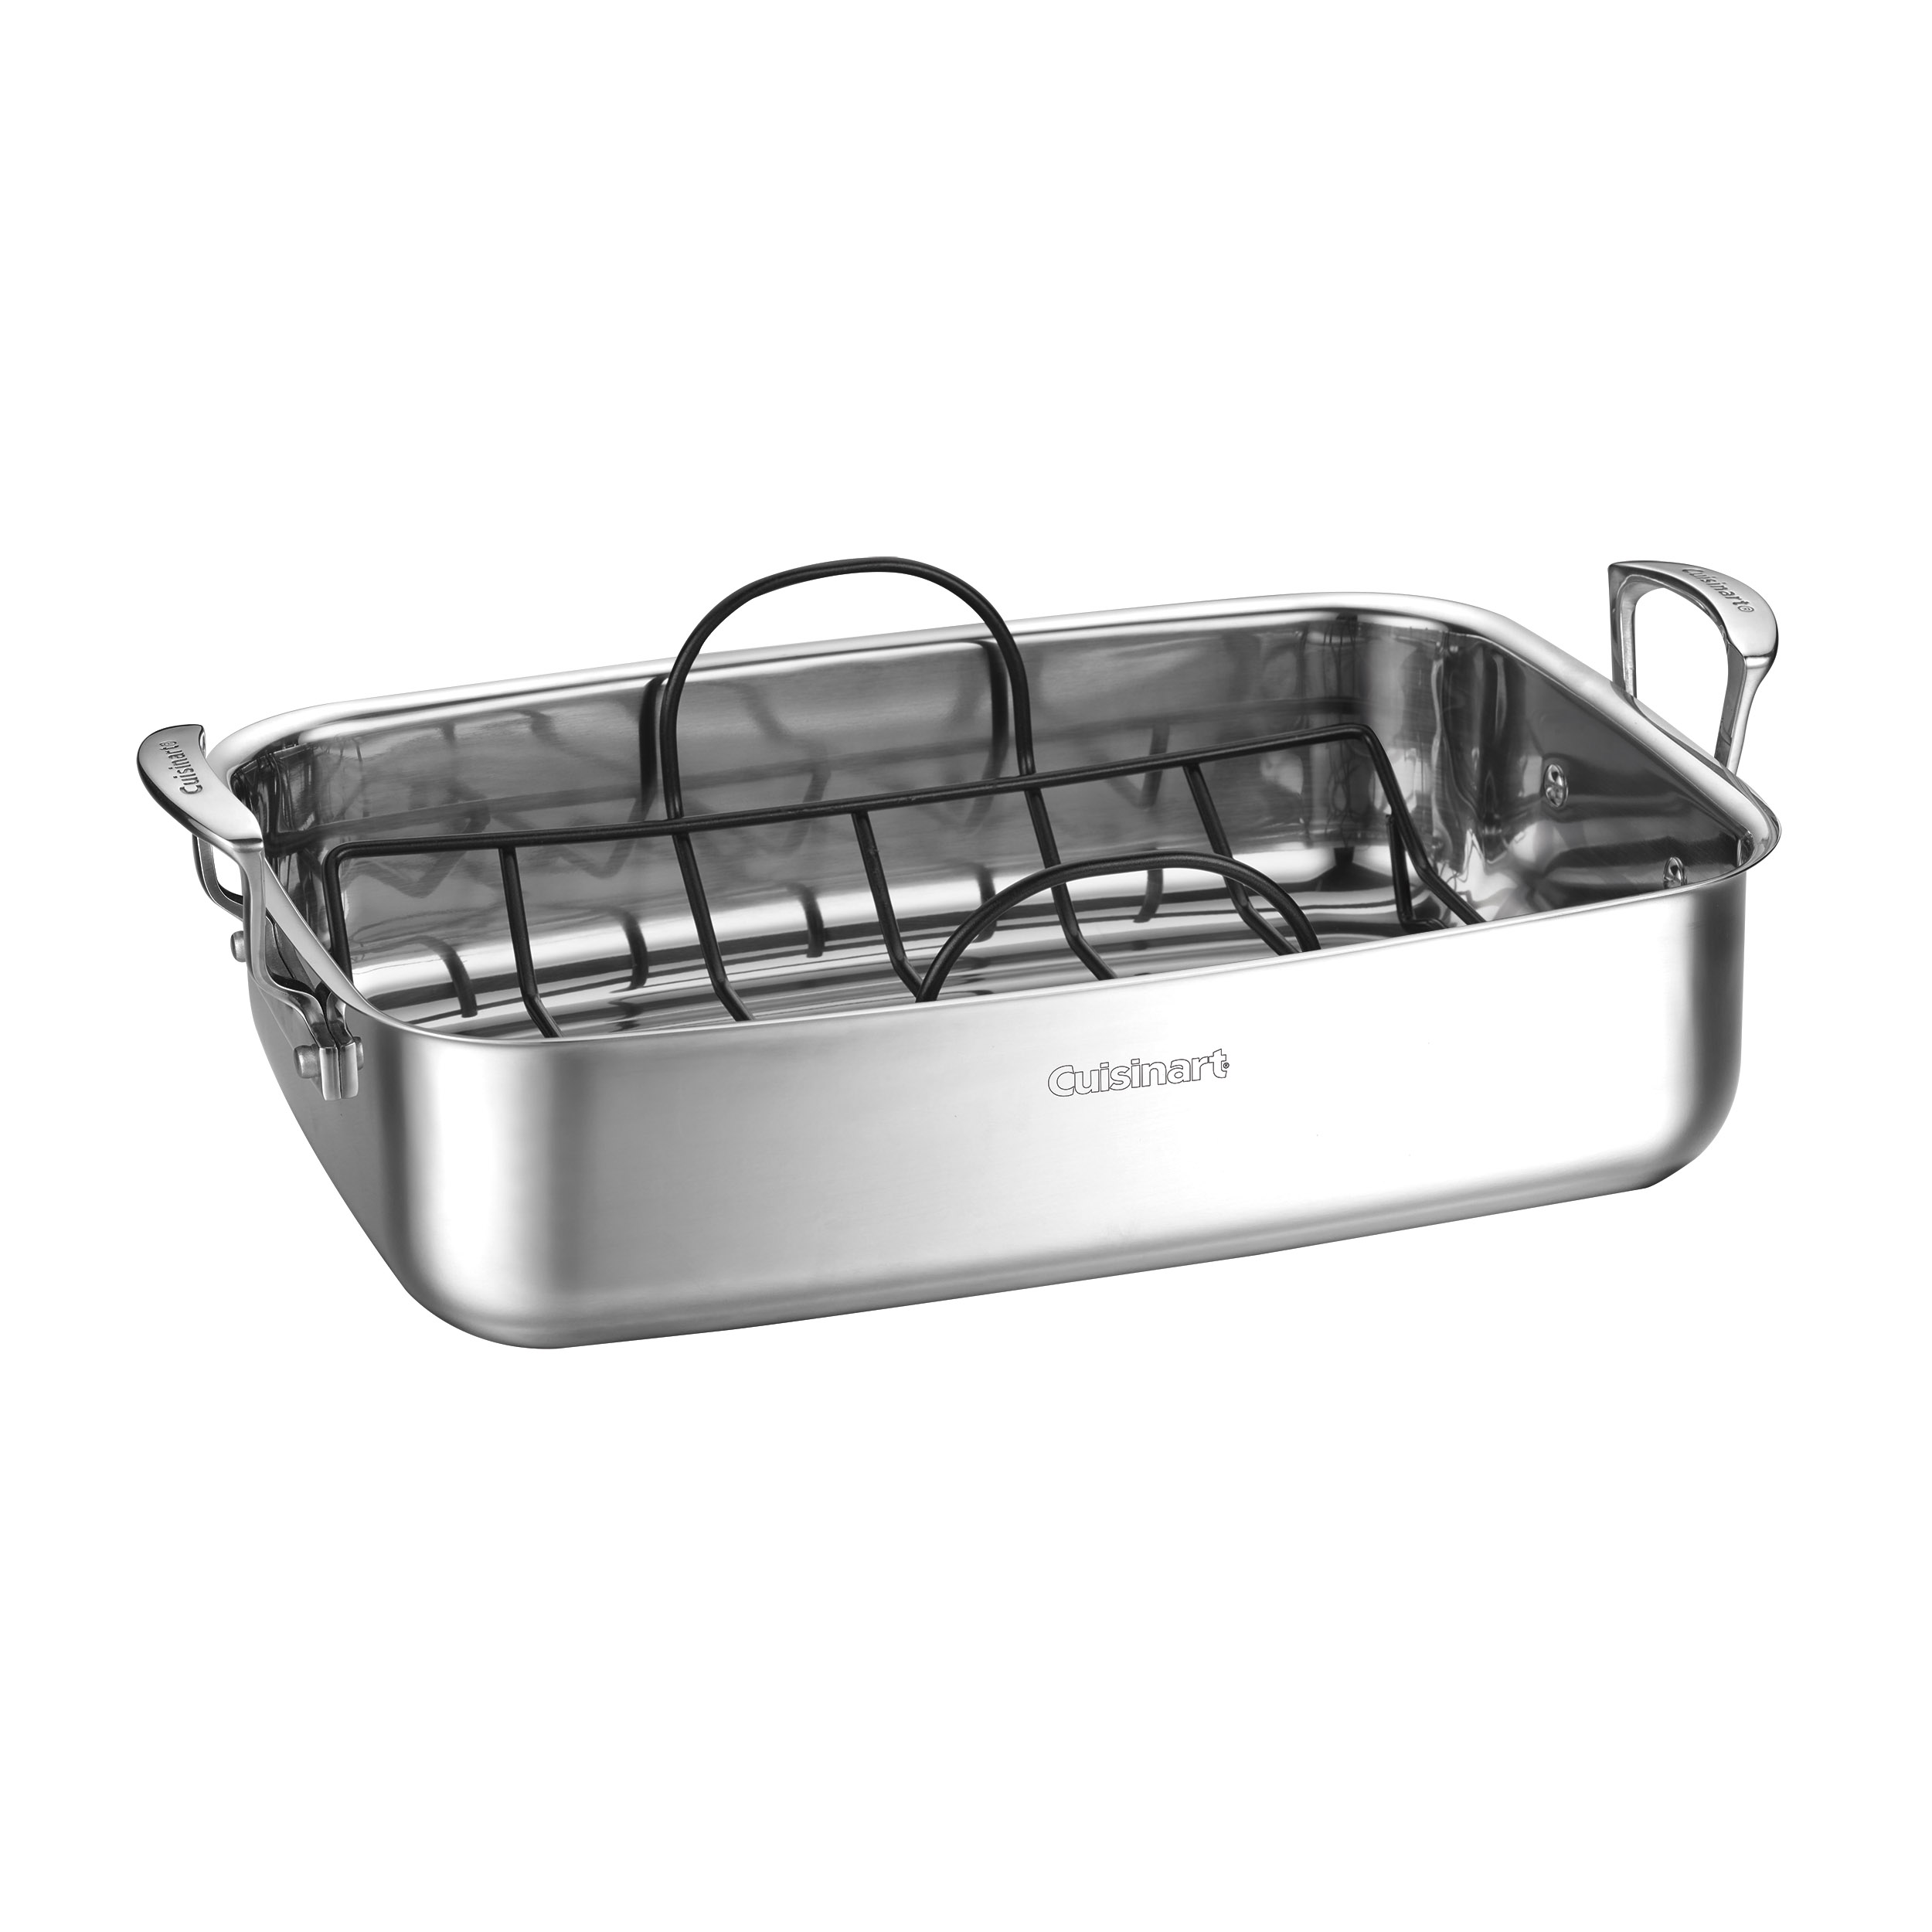 "15"" Stainless Steel Roaster with Non-Stick Rack"